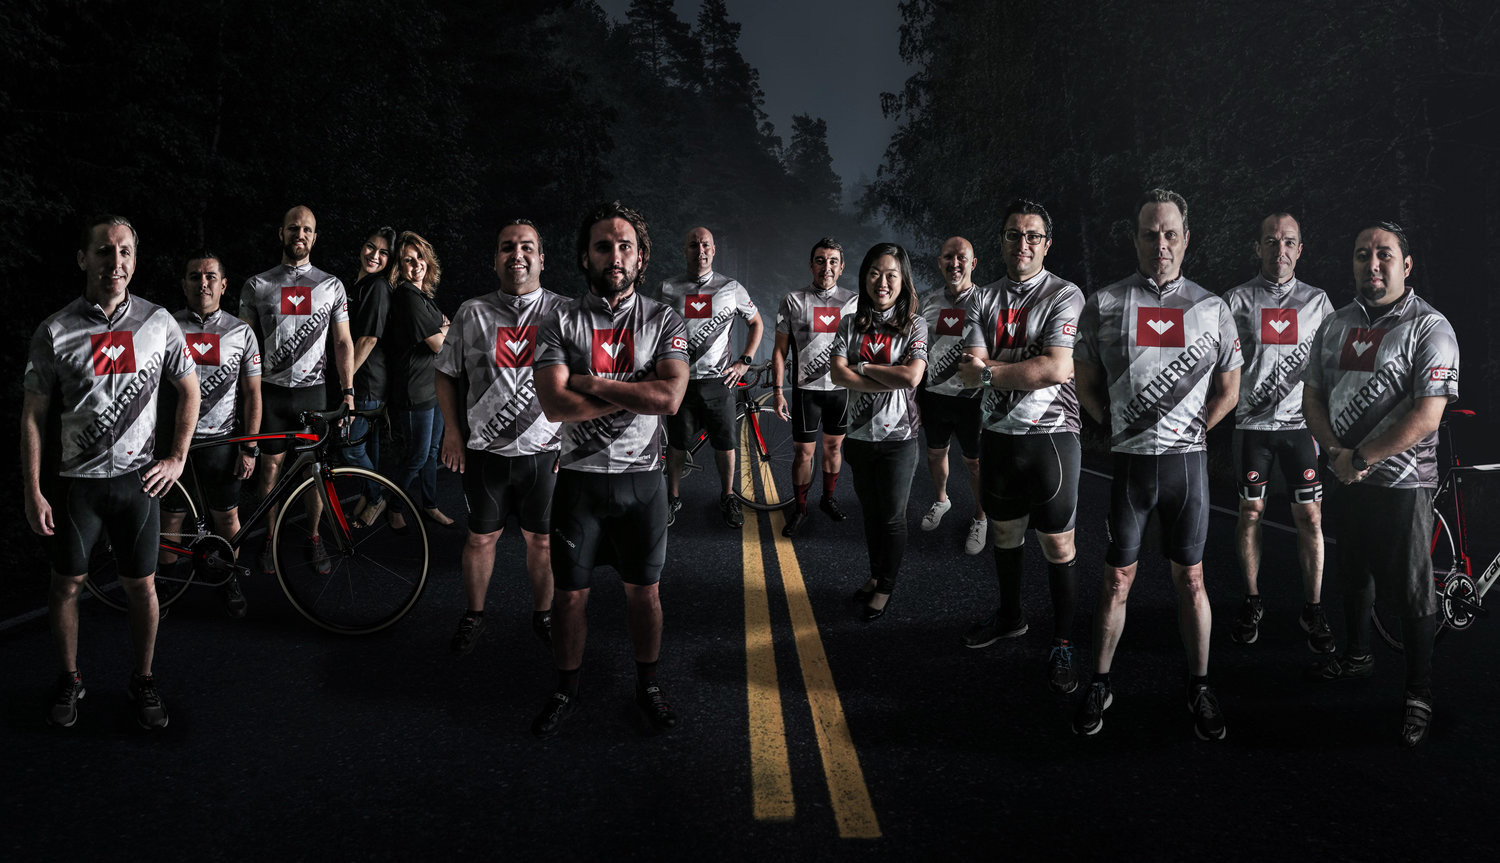 MS150+WFT+Team+2017_DARK+ROAD_v2.jpg